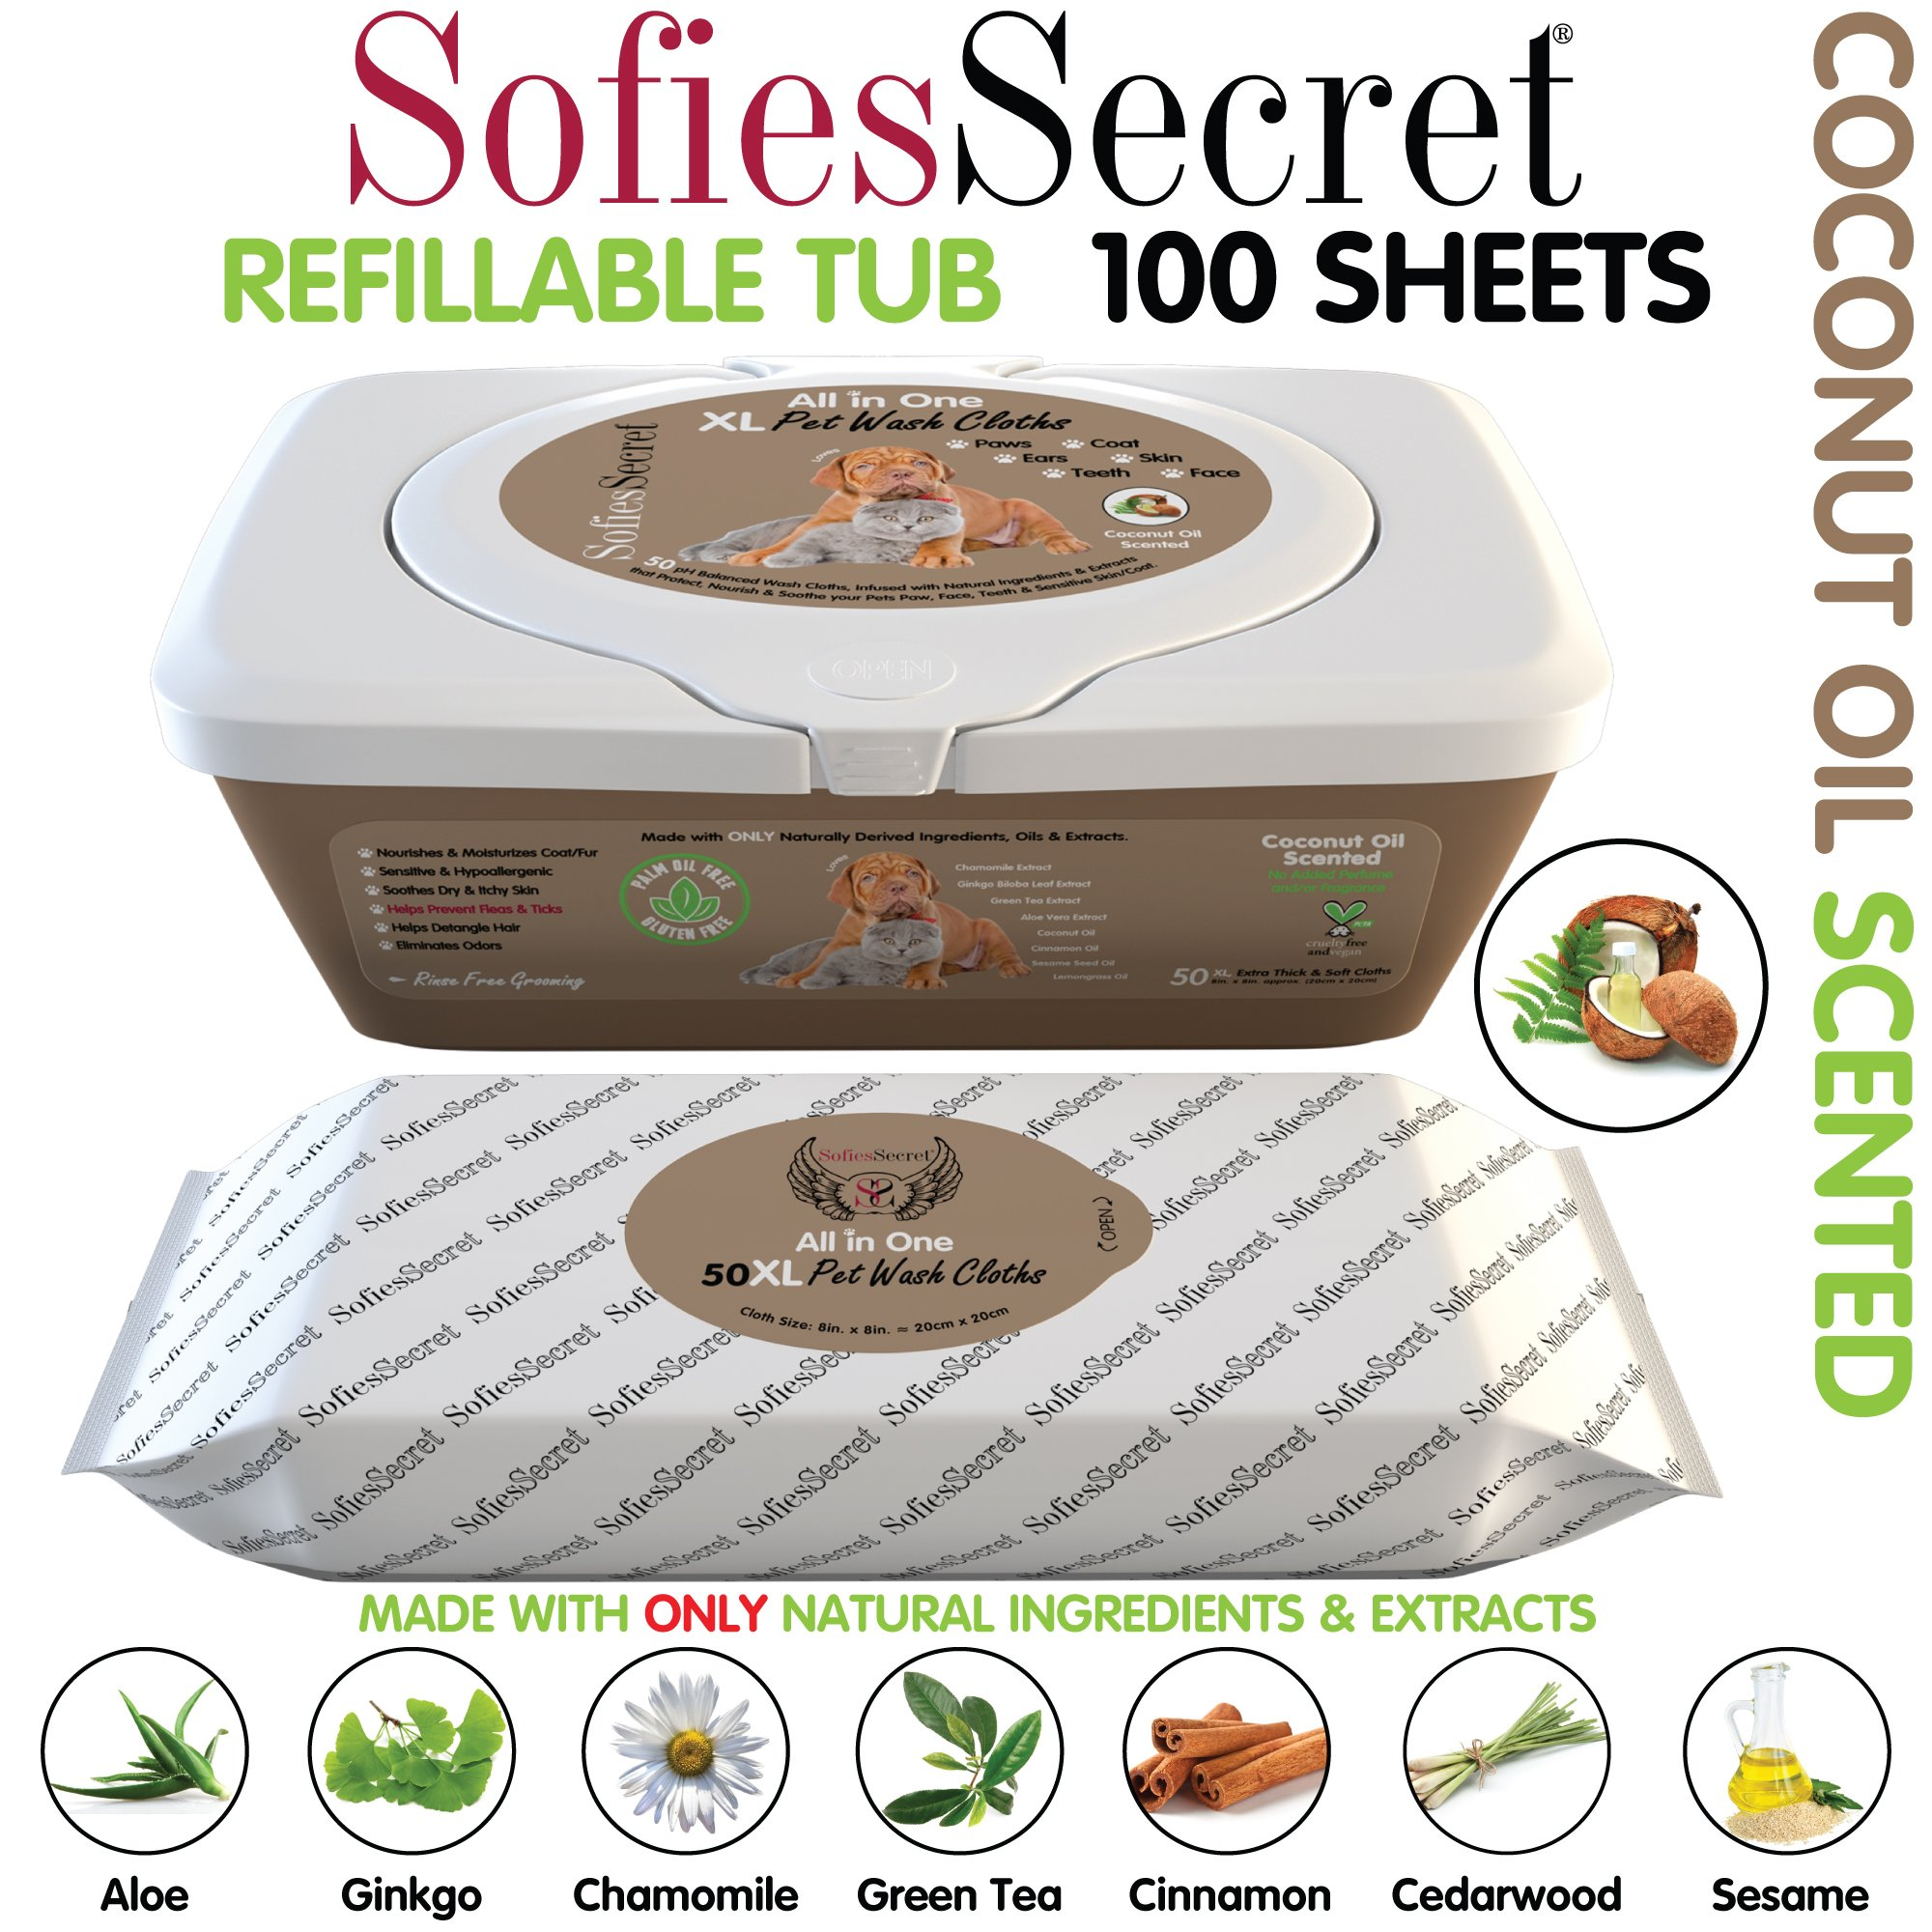 SofiesSecret XL PET WIPES, COCONUT SCENTED, All In One Grooming, Tub 100 Count for Paws, Coat, Skin, Face, Ears and Teeth, 100% Natural & Organic Extracts Extra Thick, Extra Large Cruelty Free & Vegan